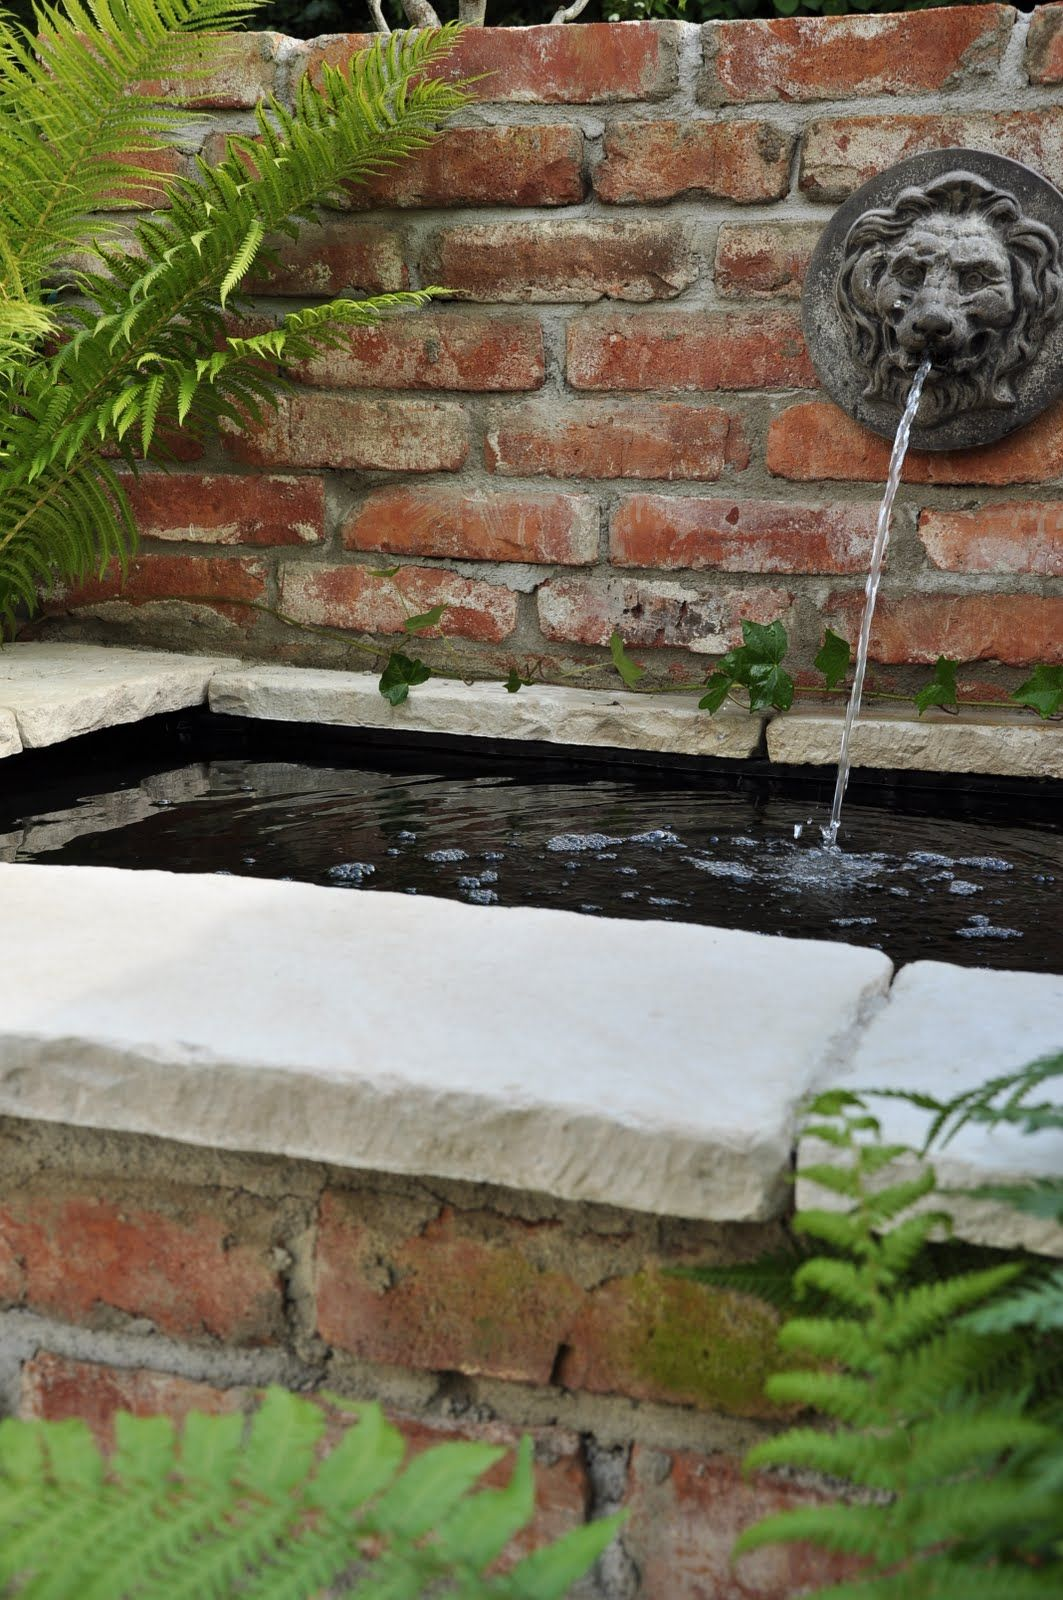 40 Backyard Wall Fountains Ideas - Feng Shui With Water ...